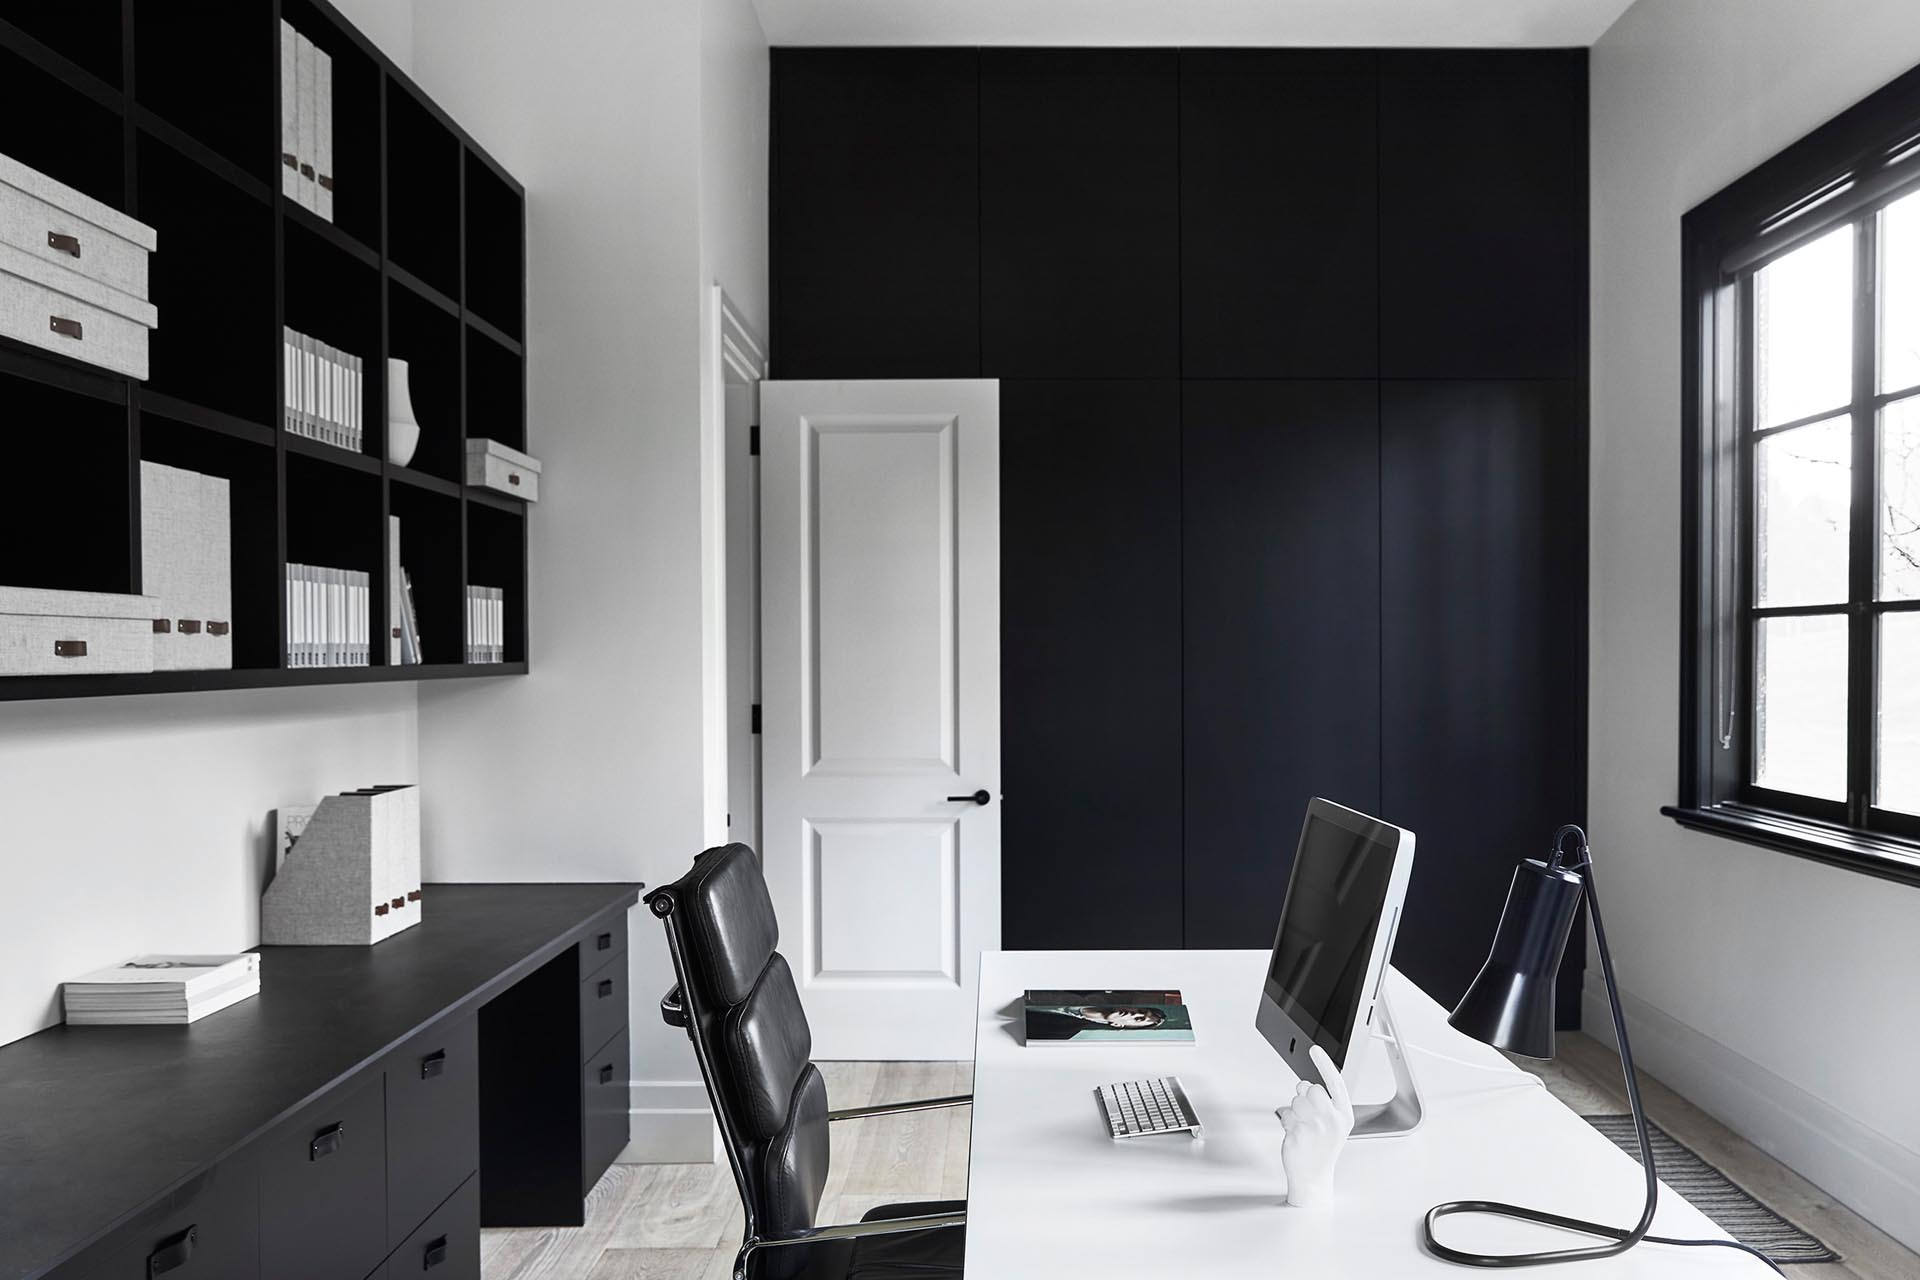 This modern home office has been kept minimally furnished with the black joinery complementing the black window frames.